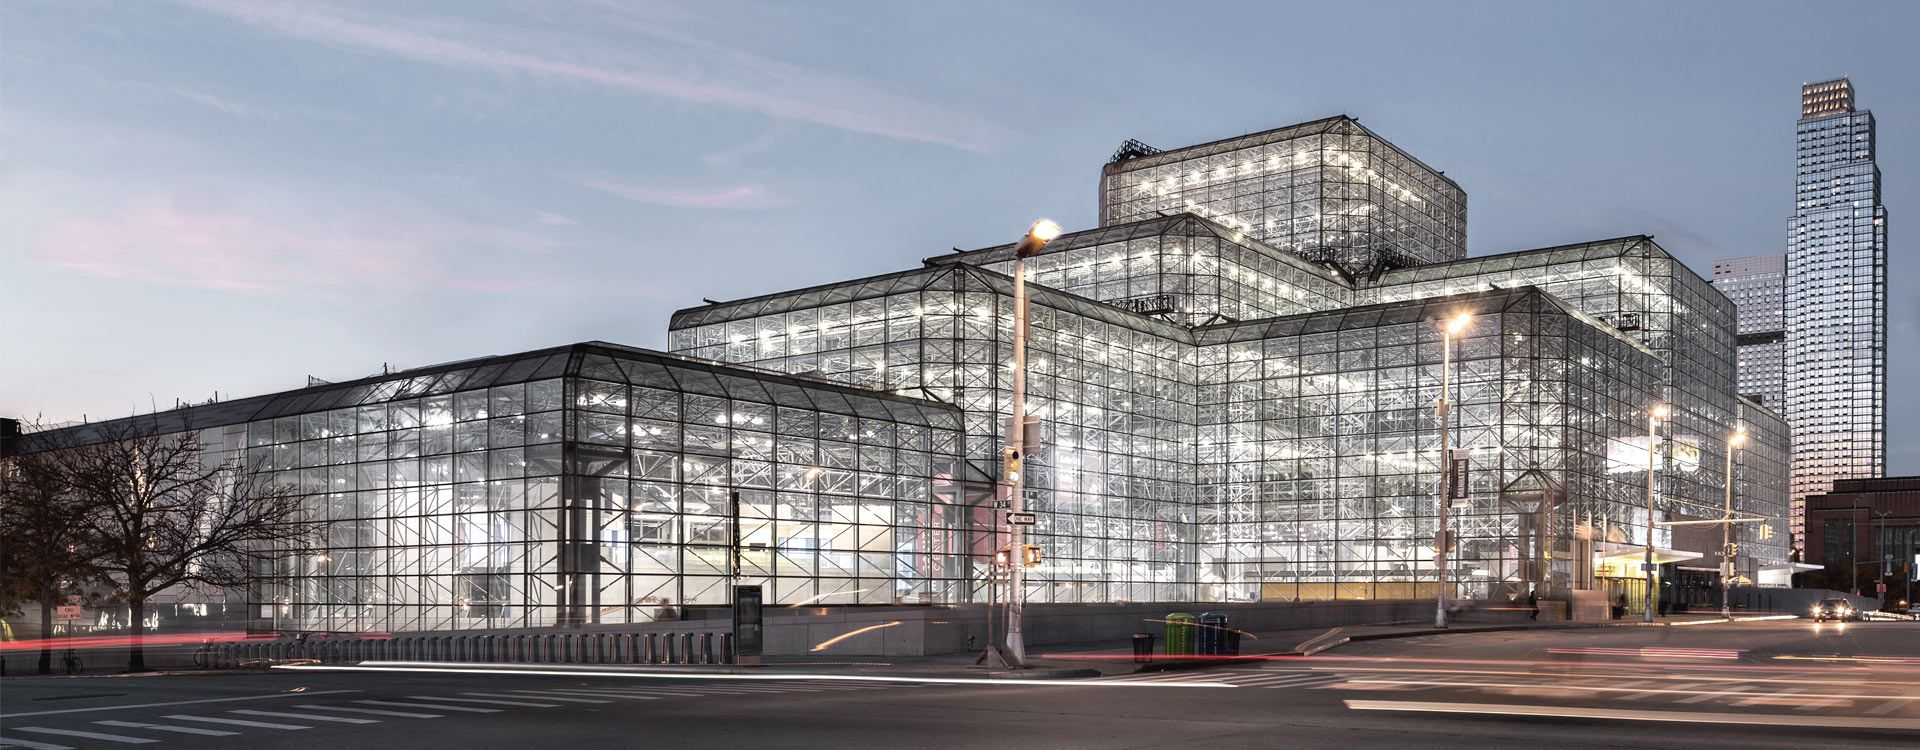 bnr-Jacob-Javits-Convention-Center_Hospitality